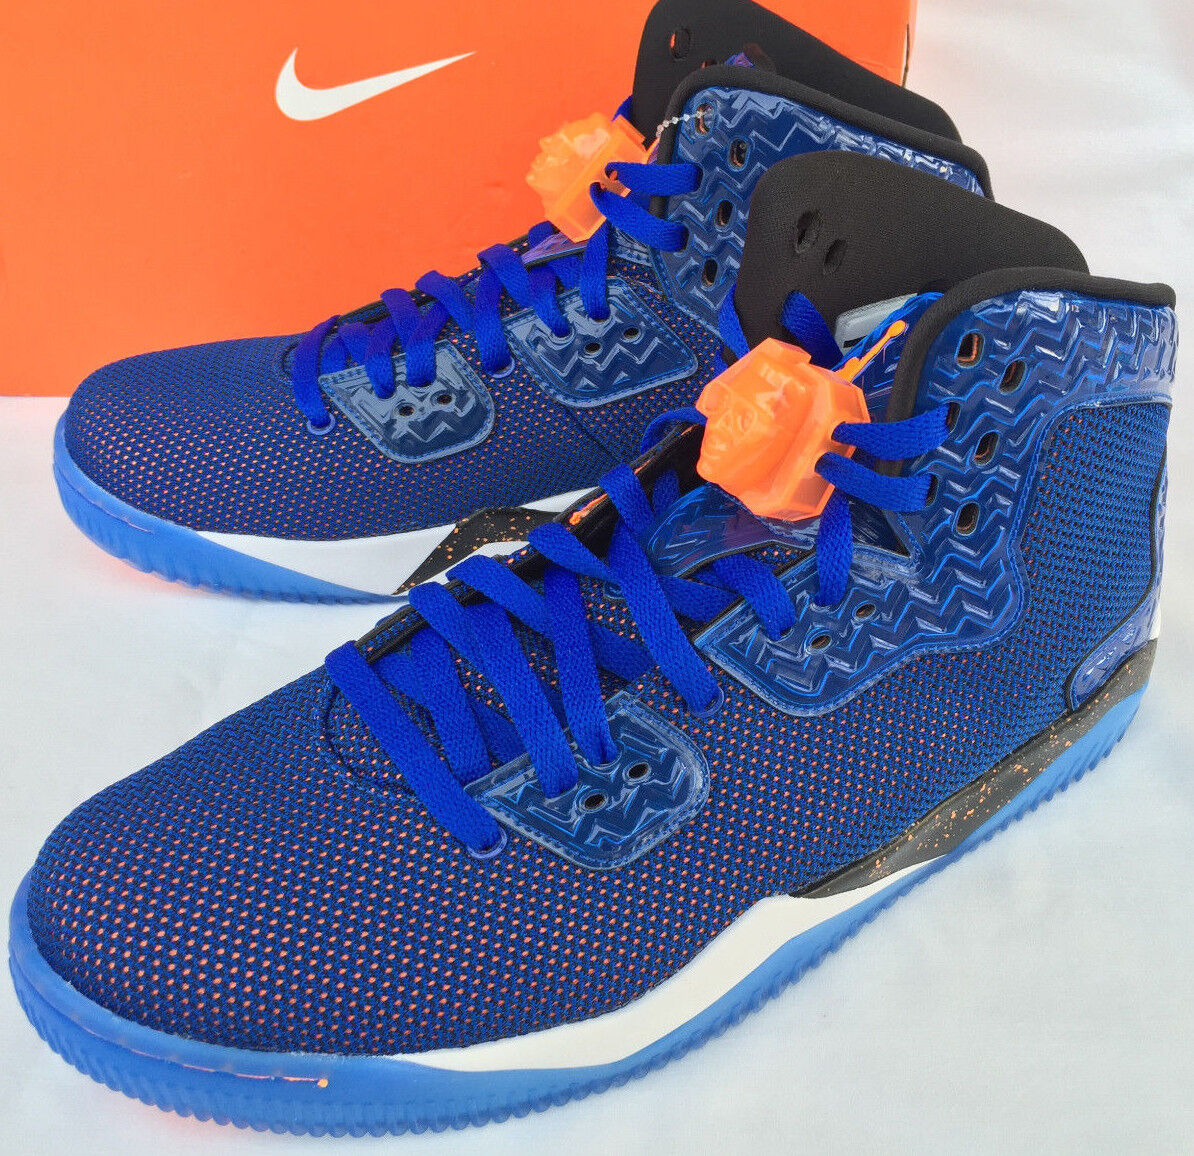 Nike Jordan Spike Forty 807541-405 40 PE Air Knicks 807541-405 Forty Zapatos de baloncesto para hombres 13 New York 5ac268